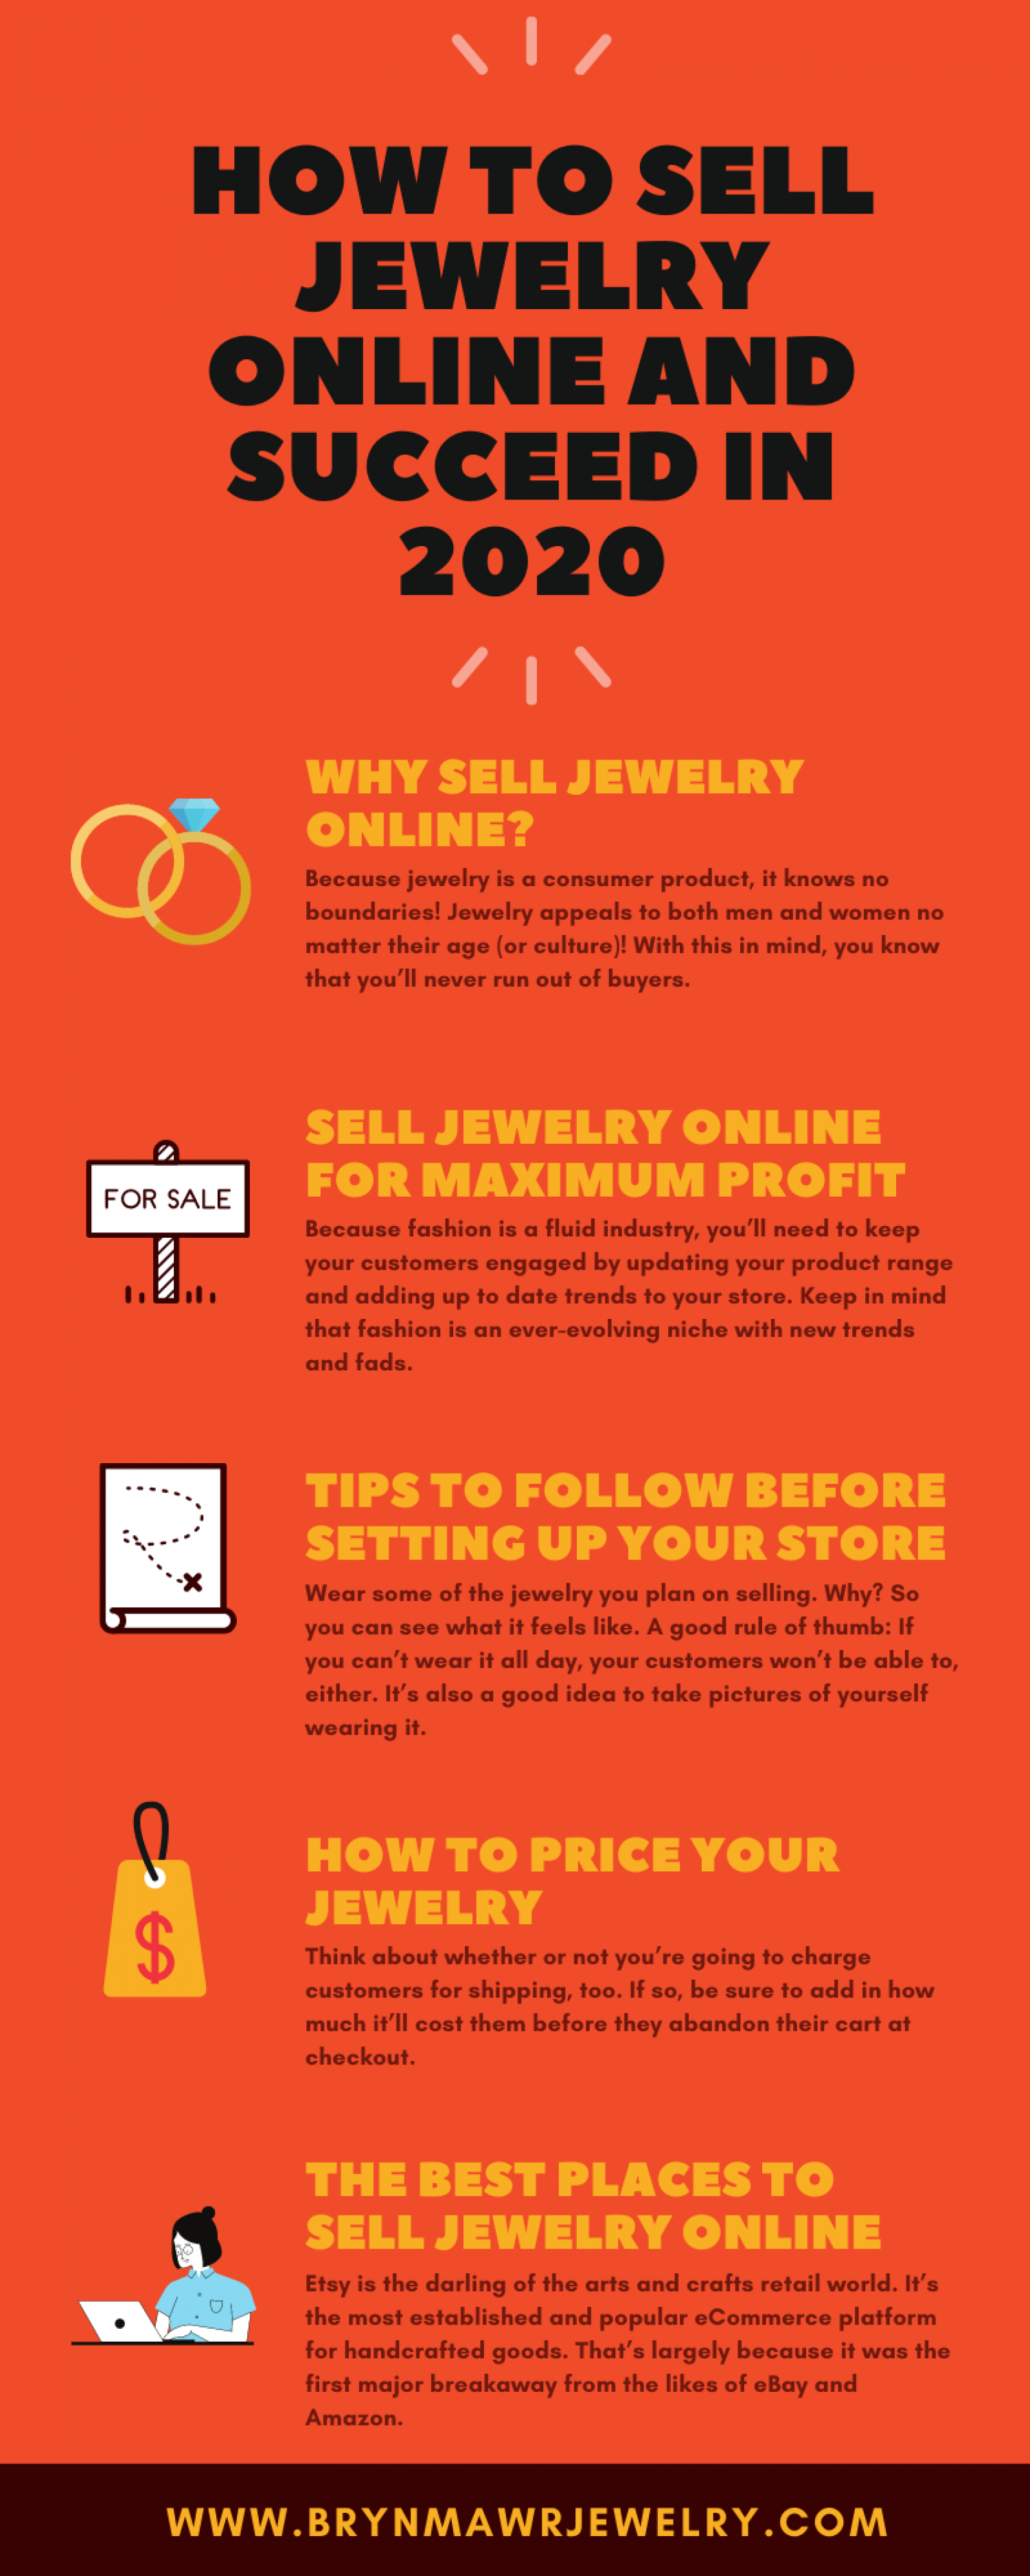 How To Sell Jewelry Online And Succeed In 2020 Infographic